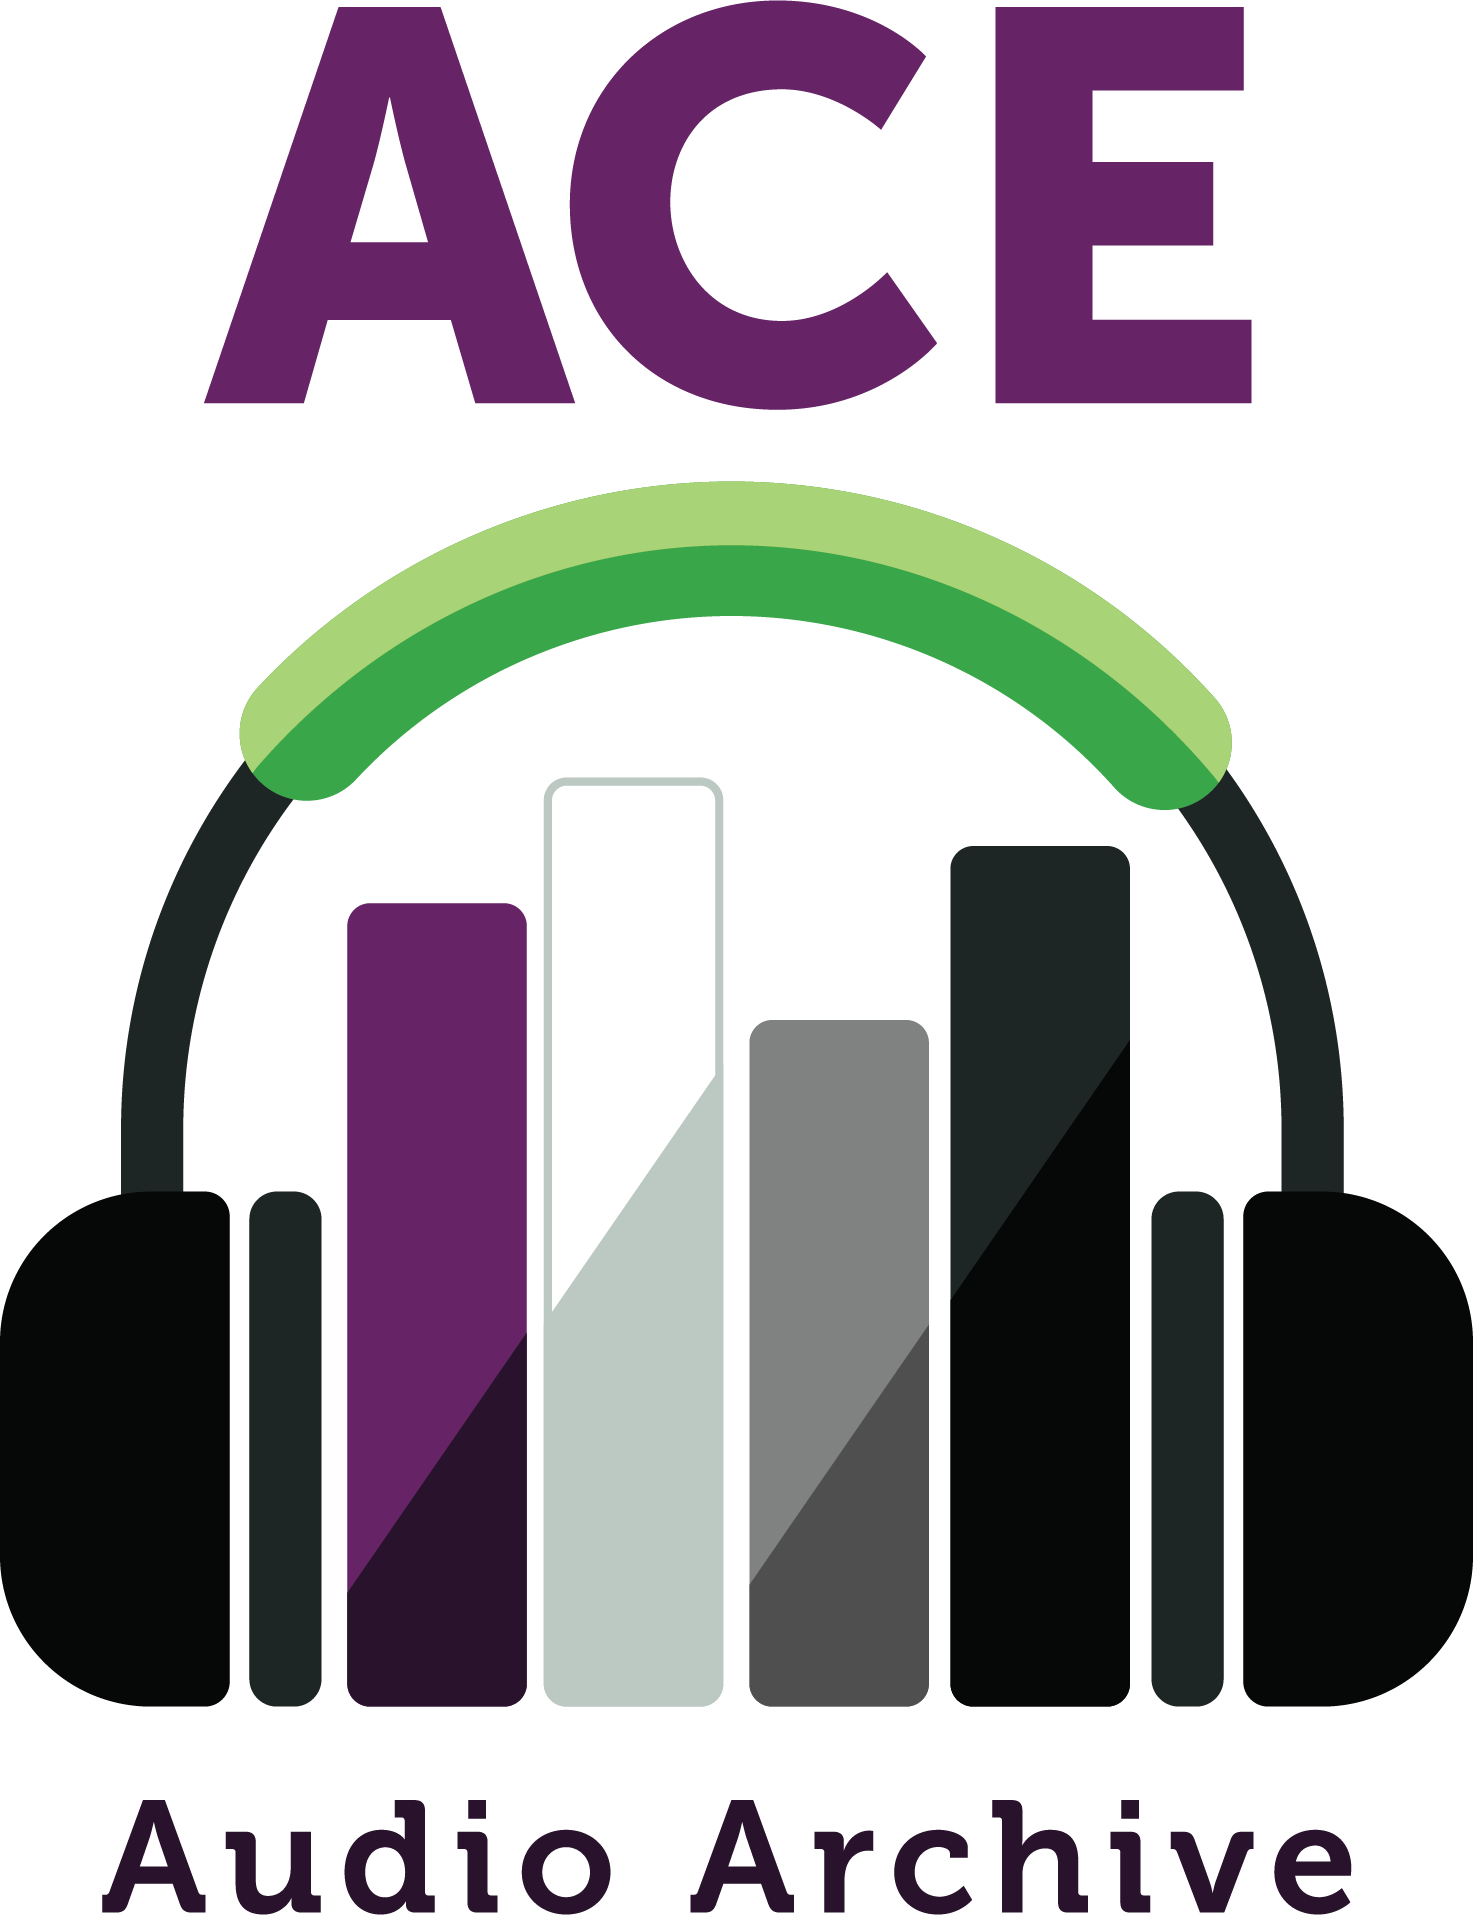 The Ace Audio Archive